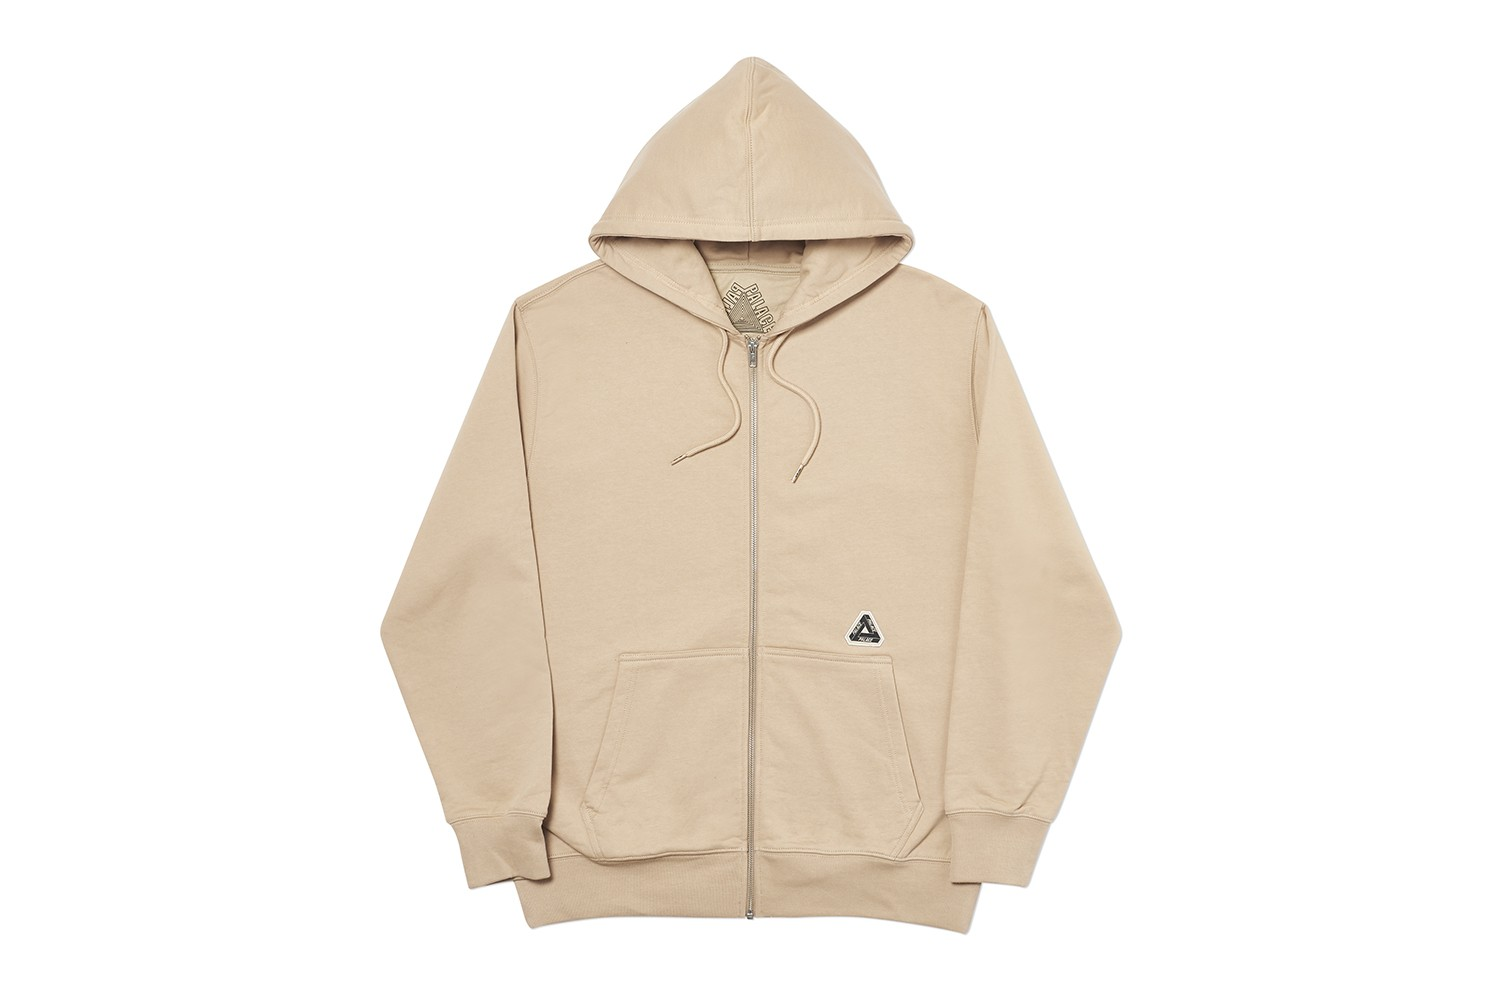 Supreme Fall Winter 2019 Week 7 Drop 2 List Palace THAMES MMXX END. SOPHNET. Timex Stone Island Mr Porter have a good time Fucking Awesome NOAH ALICE LAWRANCE